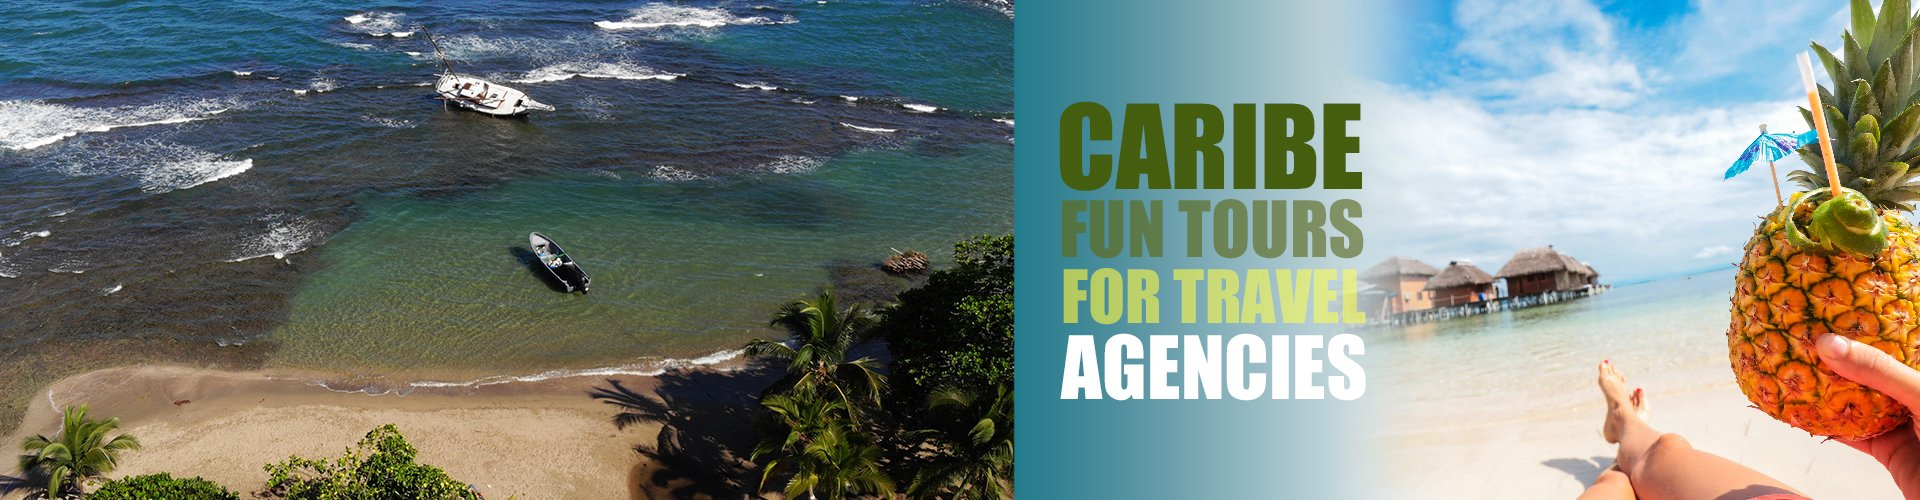 Travel Agency Partnerships